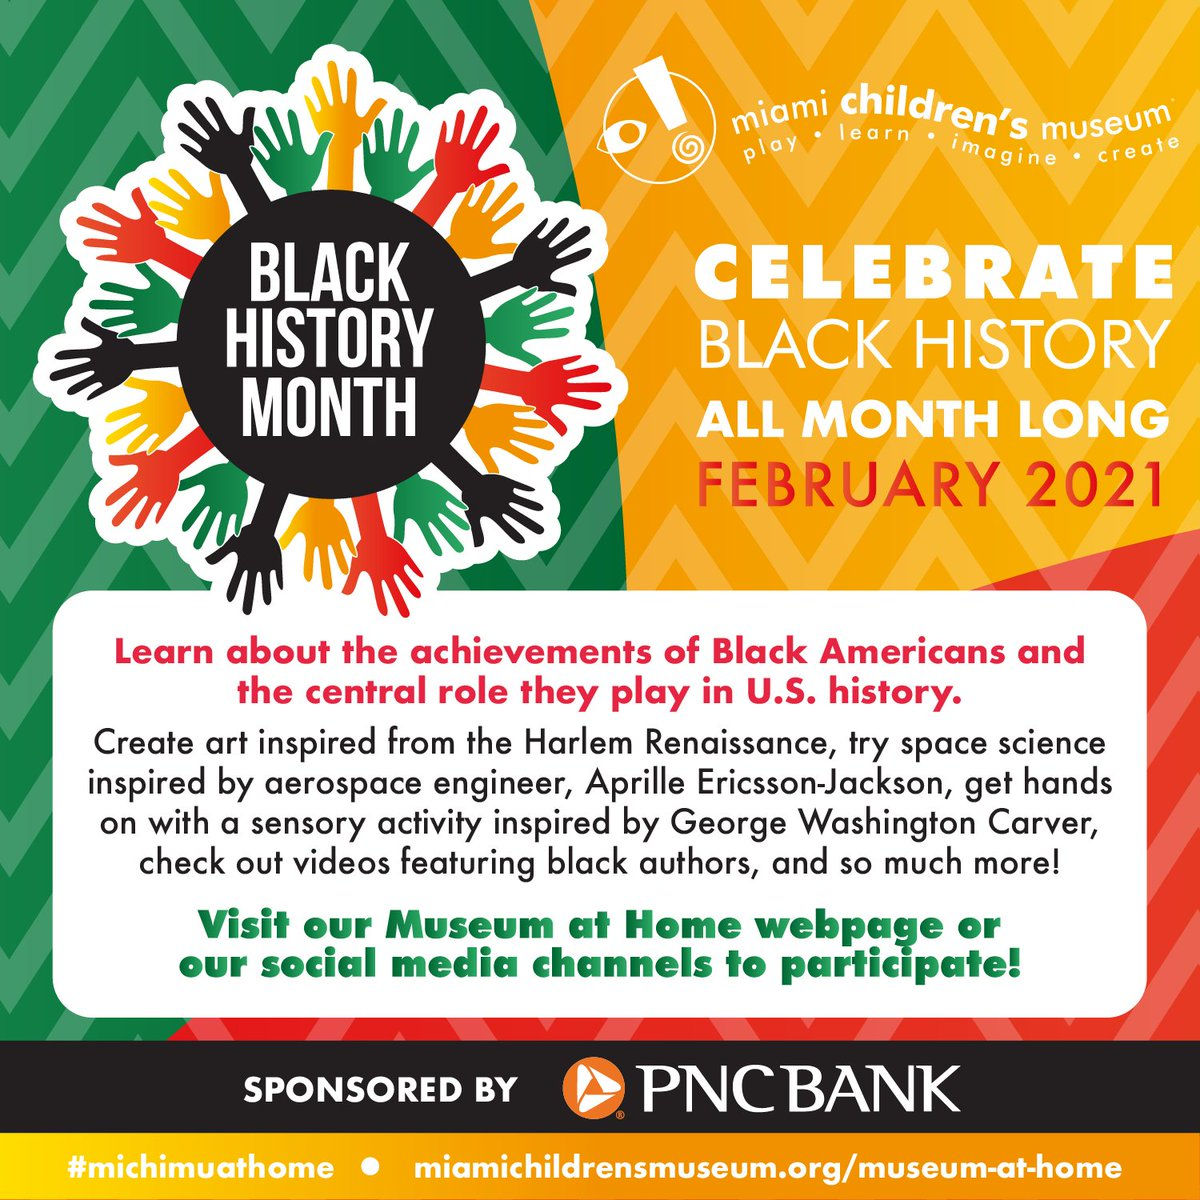 Thank you @PNCBank for sponsoring #BlackHistoryMonth   Follow us on social or visit our #michimuathome page for #free programming all month long: https://t.co/Cyg0j9Y8T7  #ThankfulThursday https://t.co/H6K8TTboFo